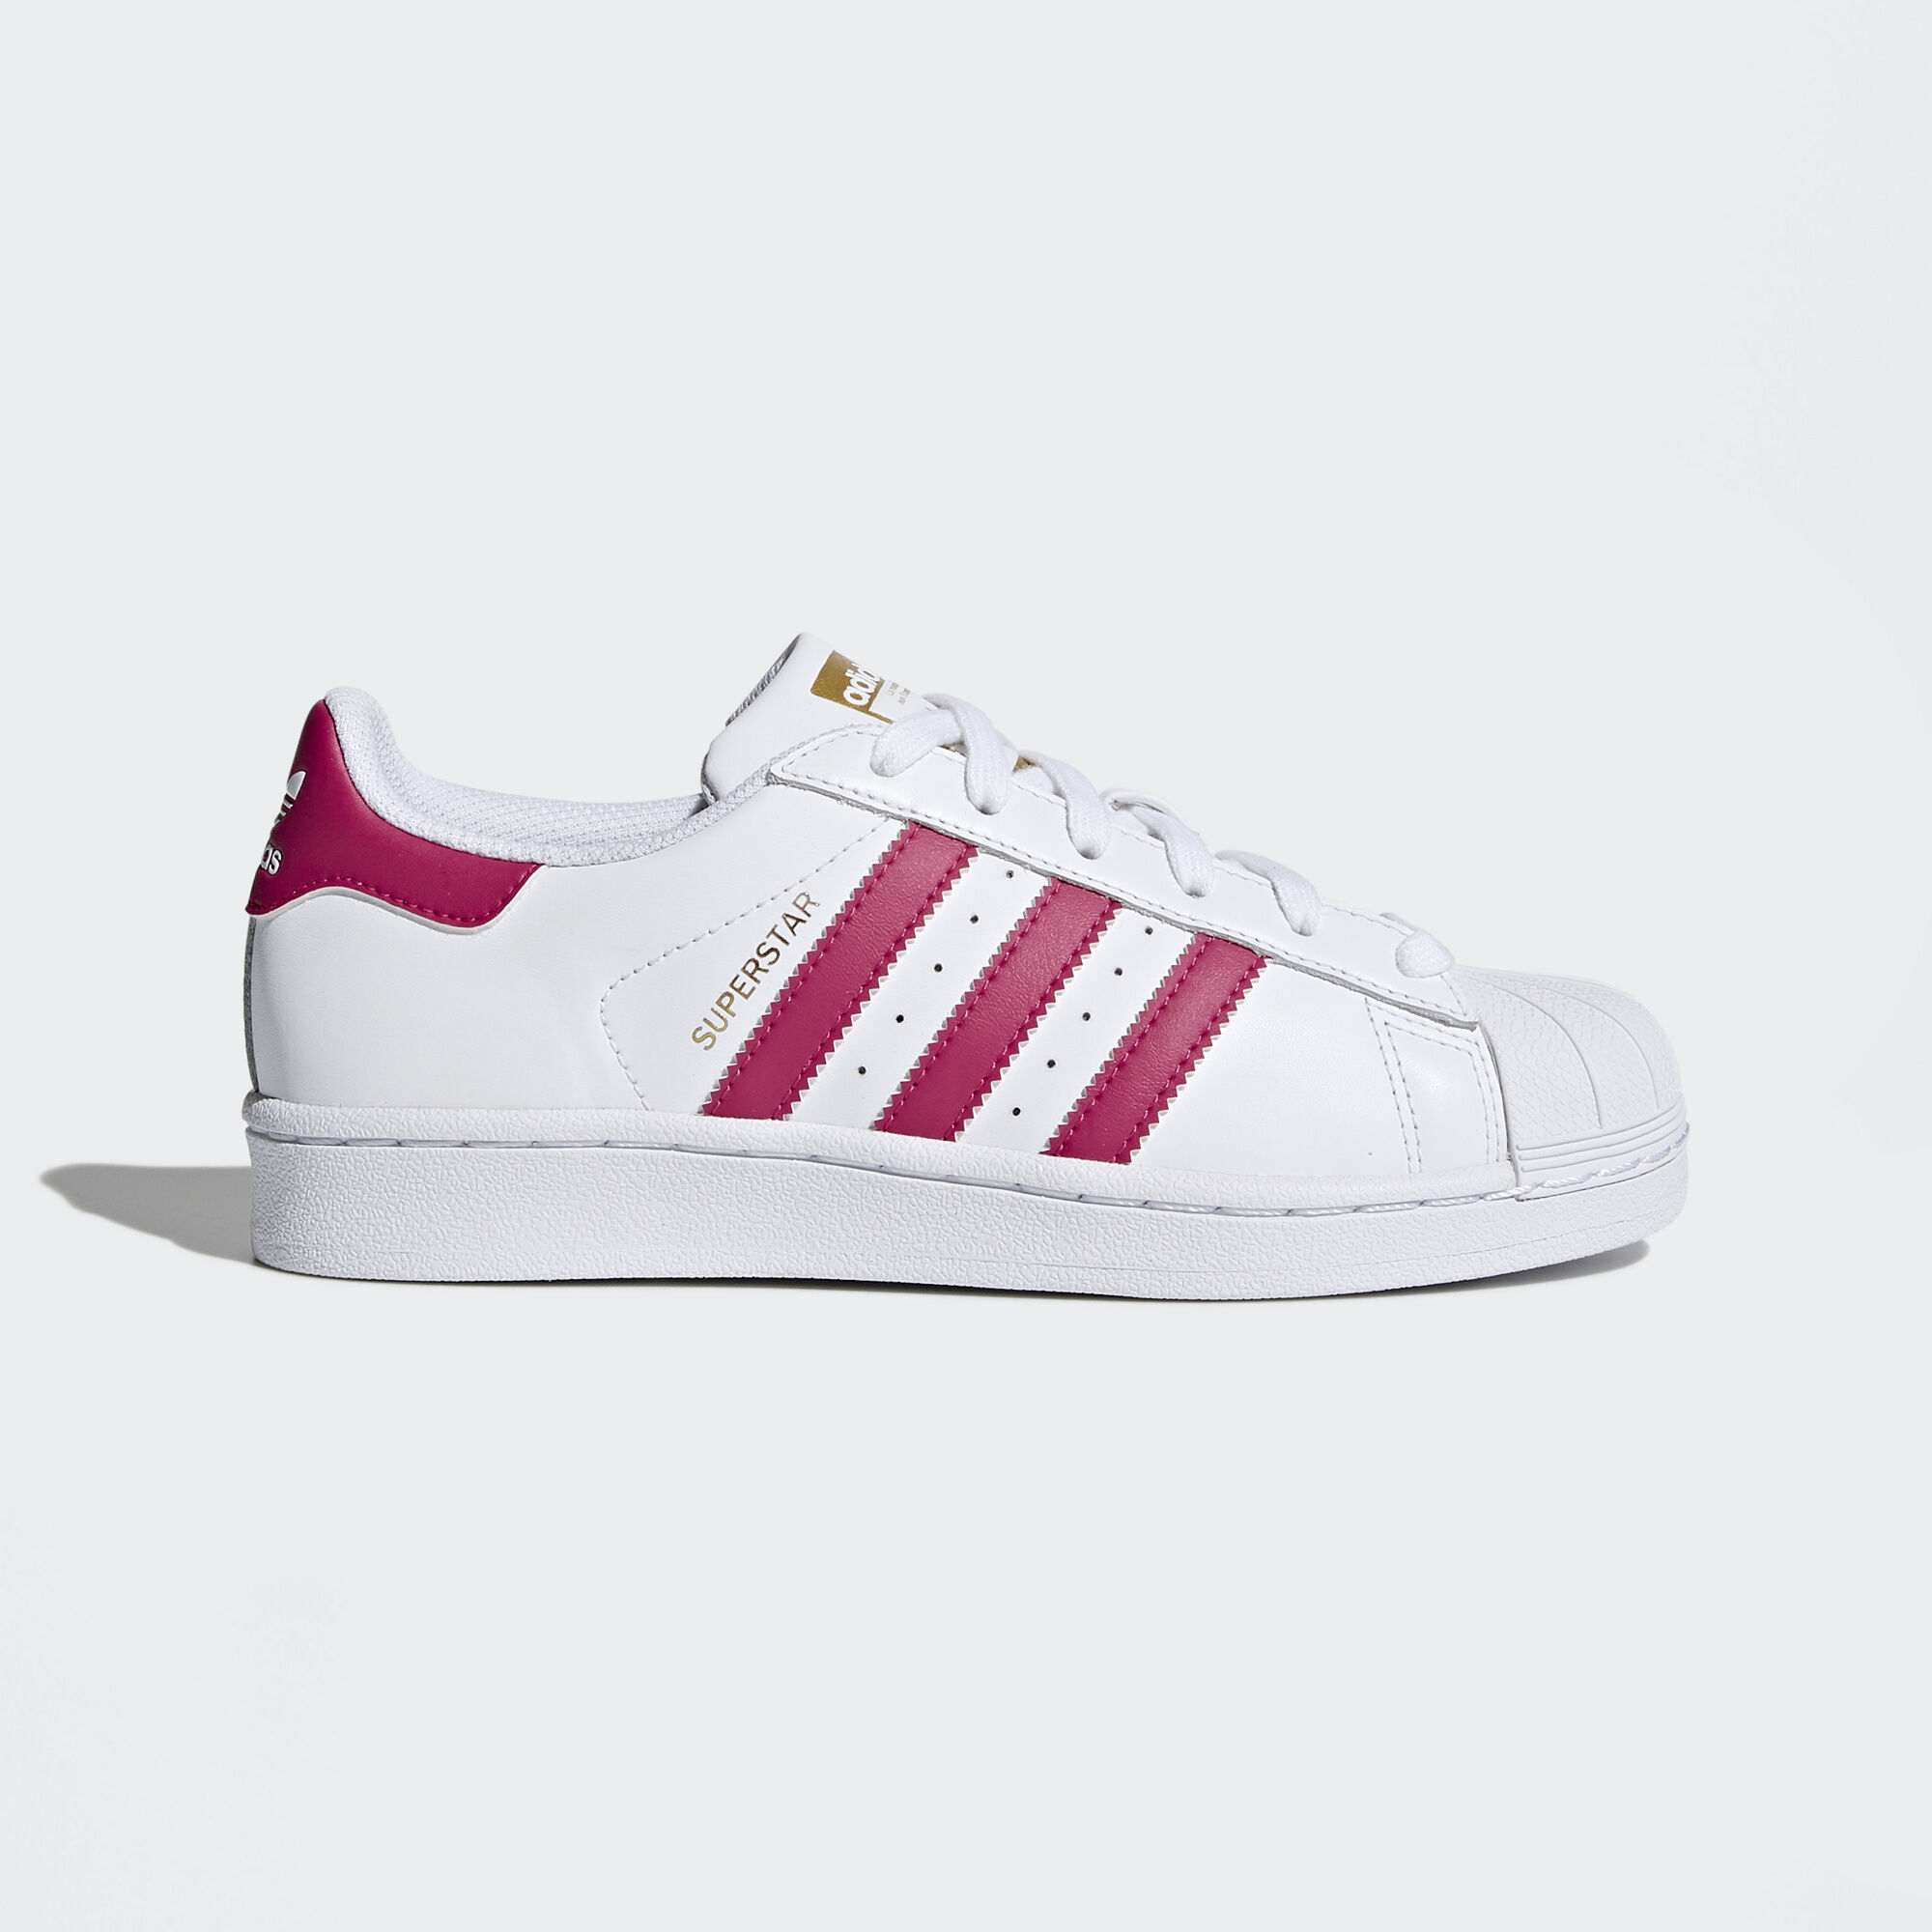 Adidas All Star Pink